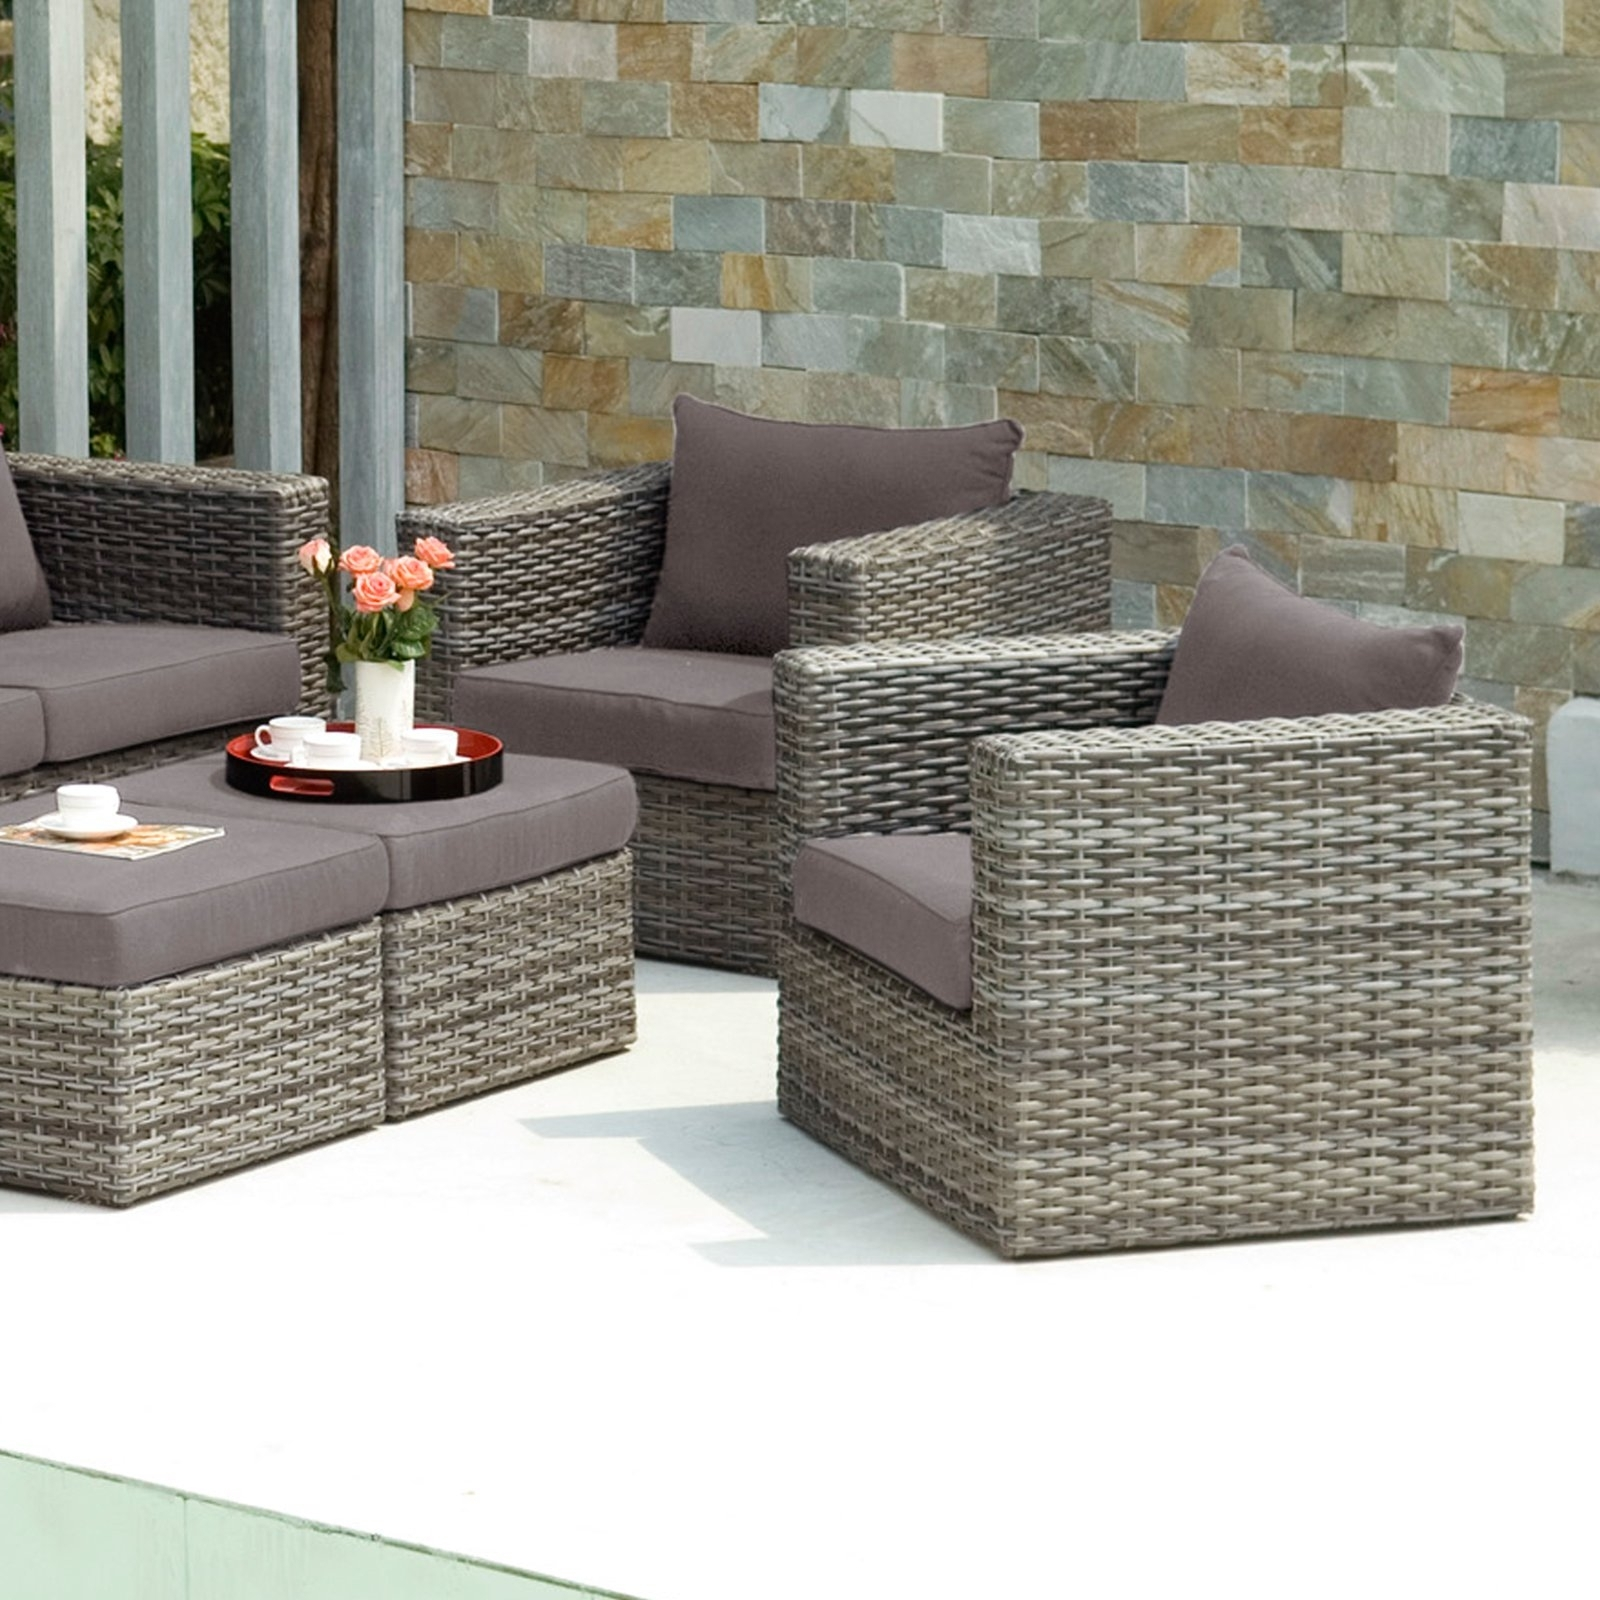 Fashionable Wicker Rocking Chairs And Ottoman With Regard To Wicker Outdoor Chairs Set With Ottoman Coffee Table Idea Of A (View 15 of 15)